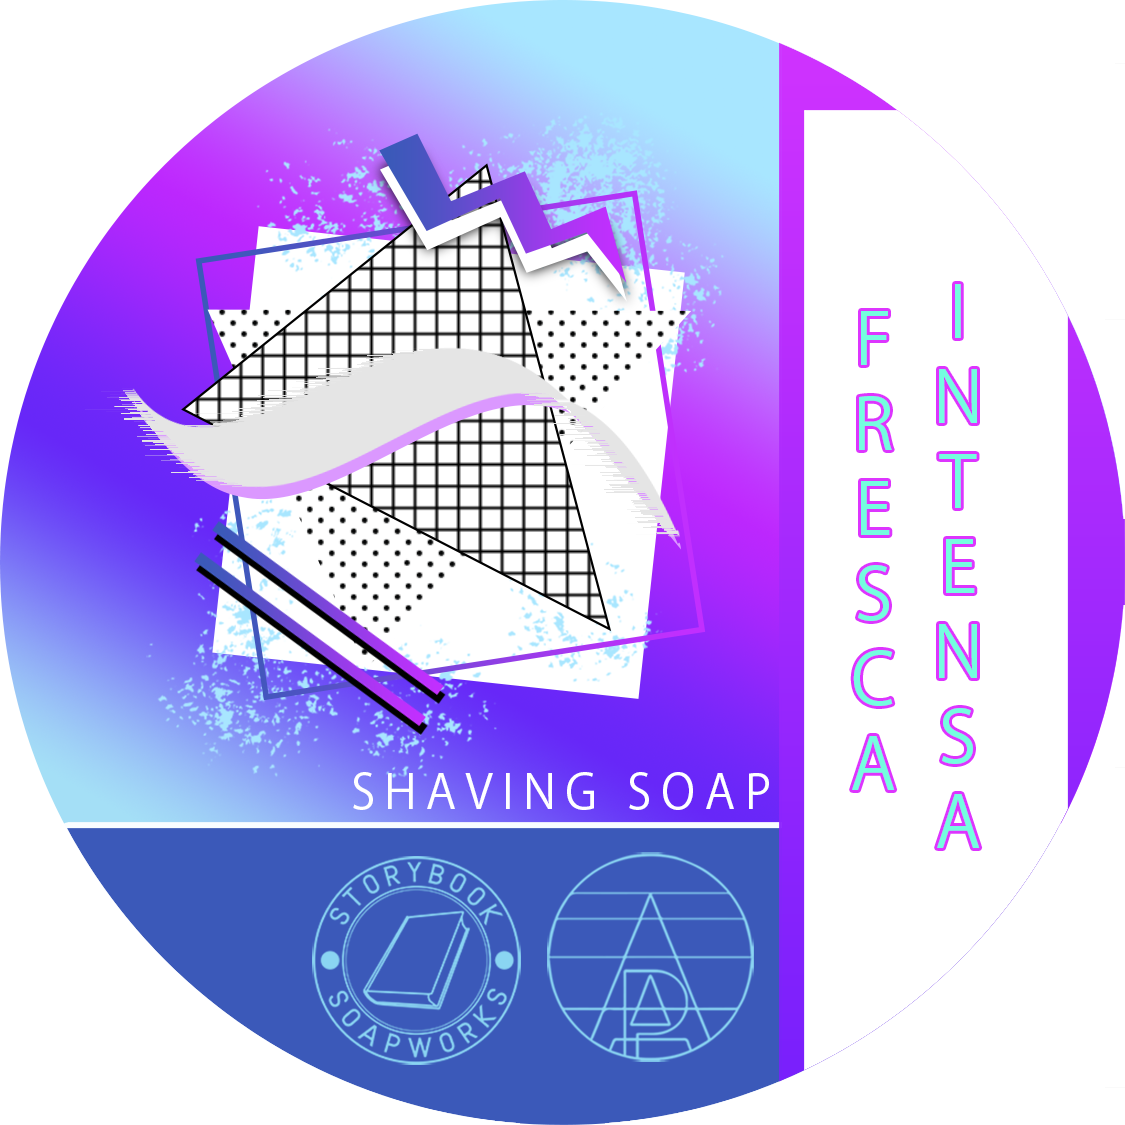 Australian Private Reserve/Storybook Soapworks - Fresca Intensa - Soap